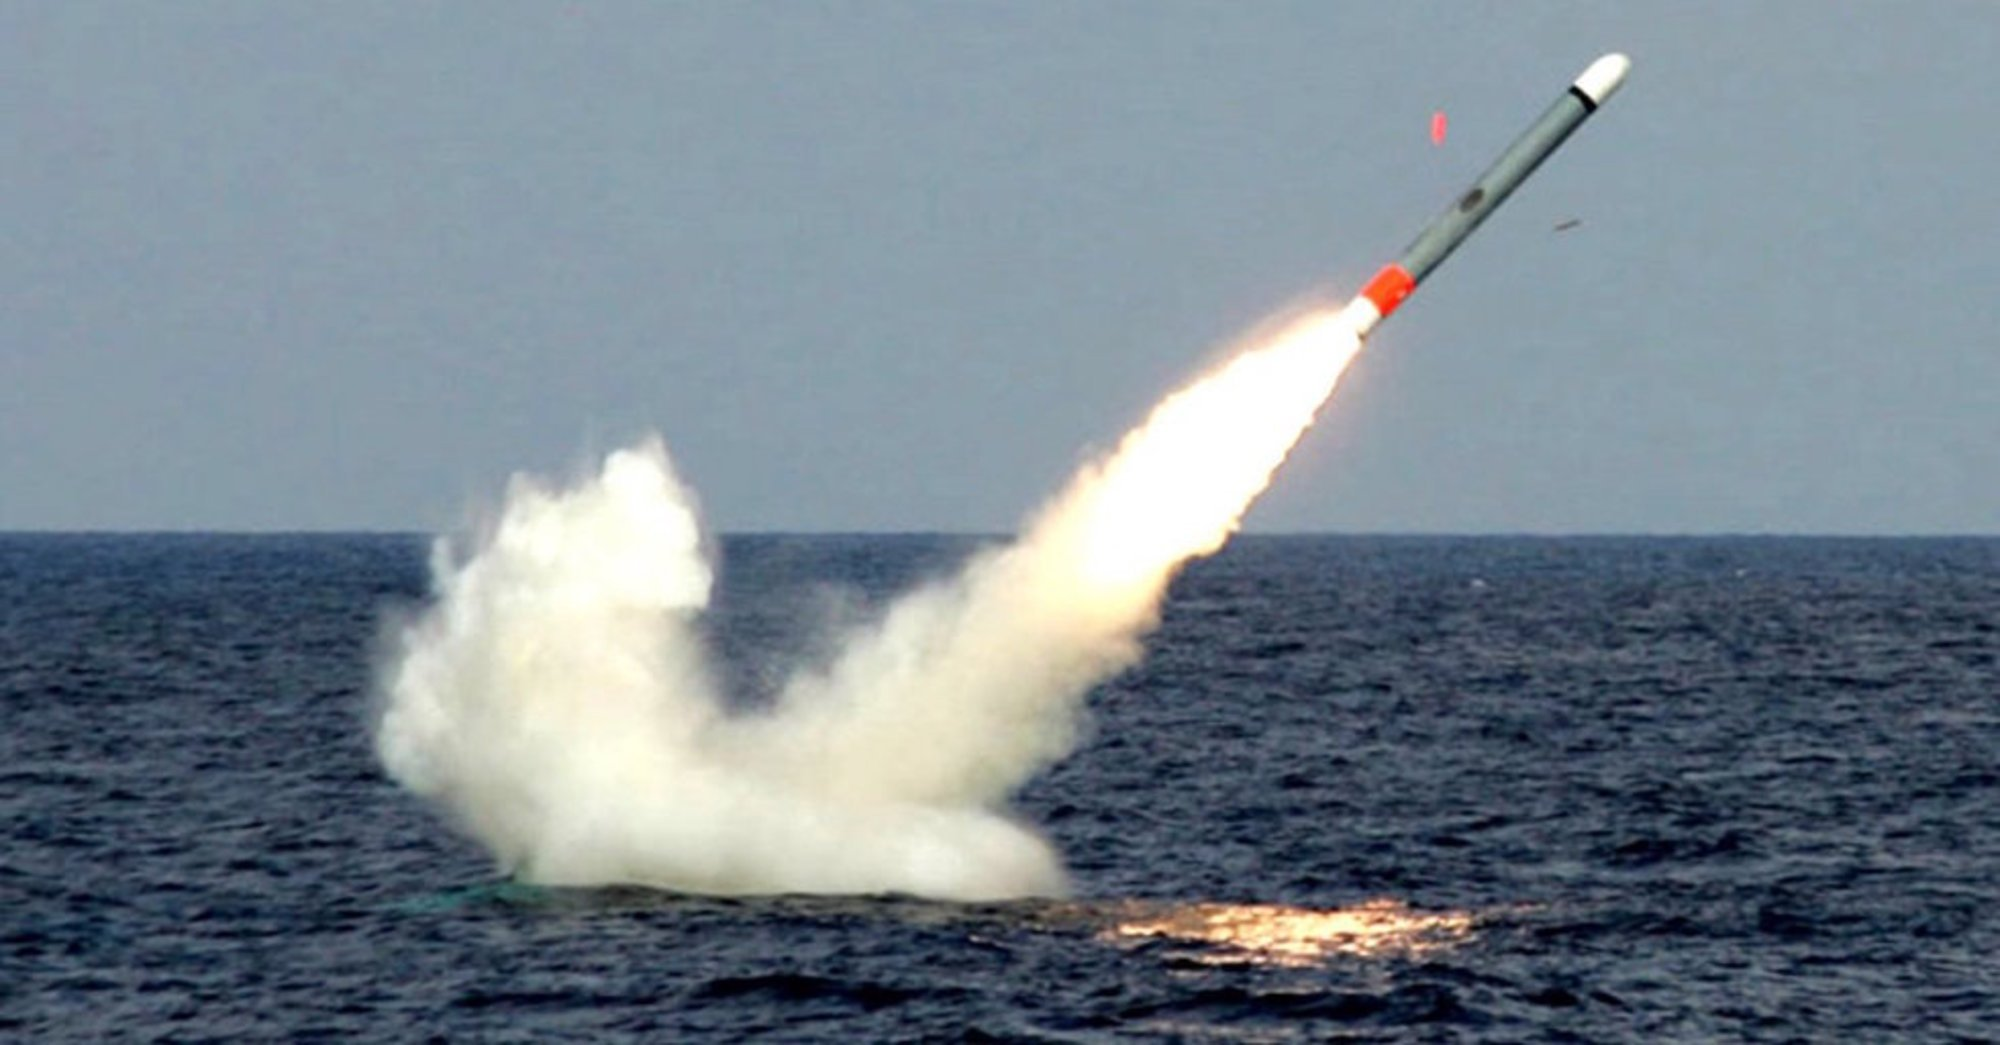 Underwater launching of a Tomahawk SLBM